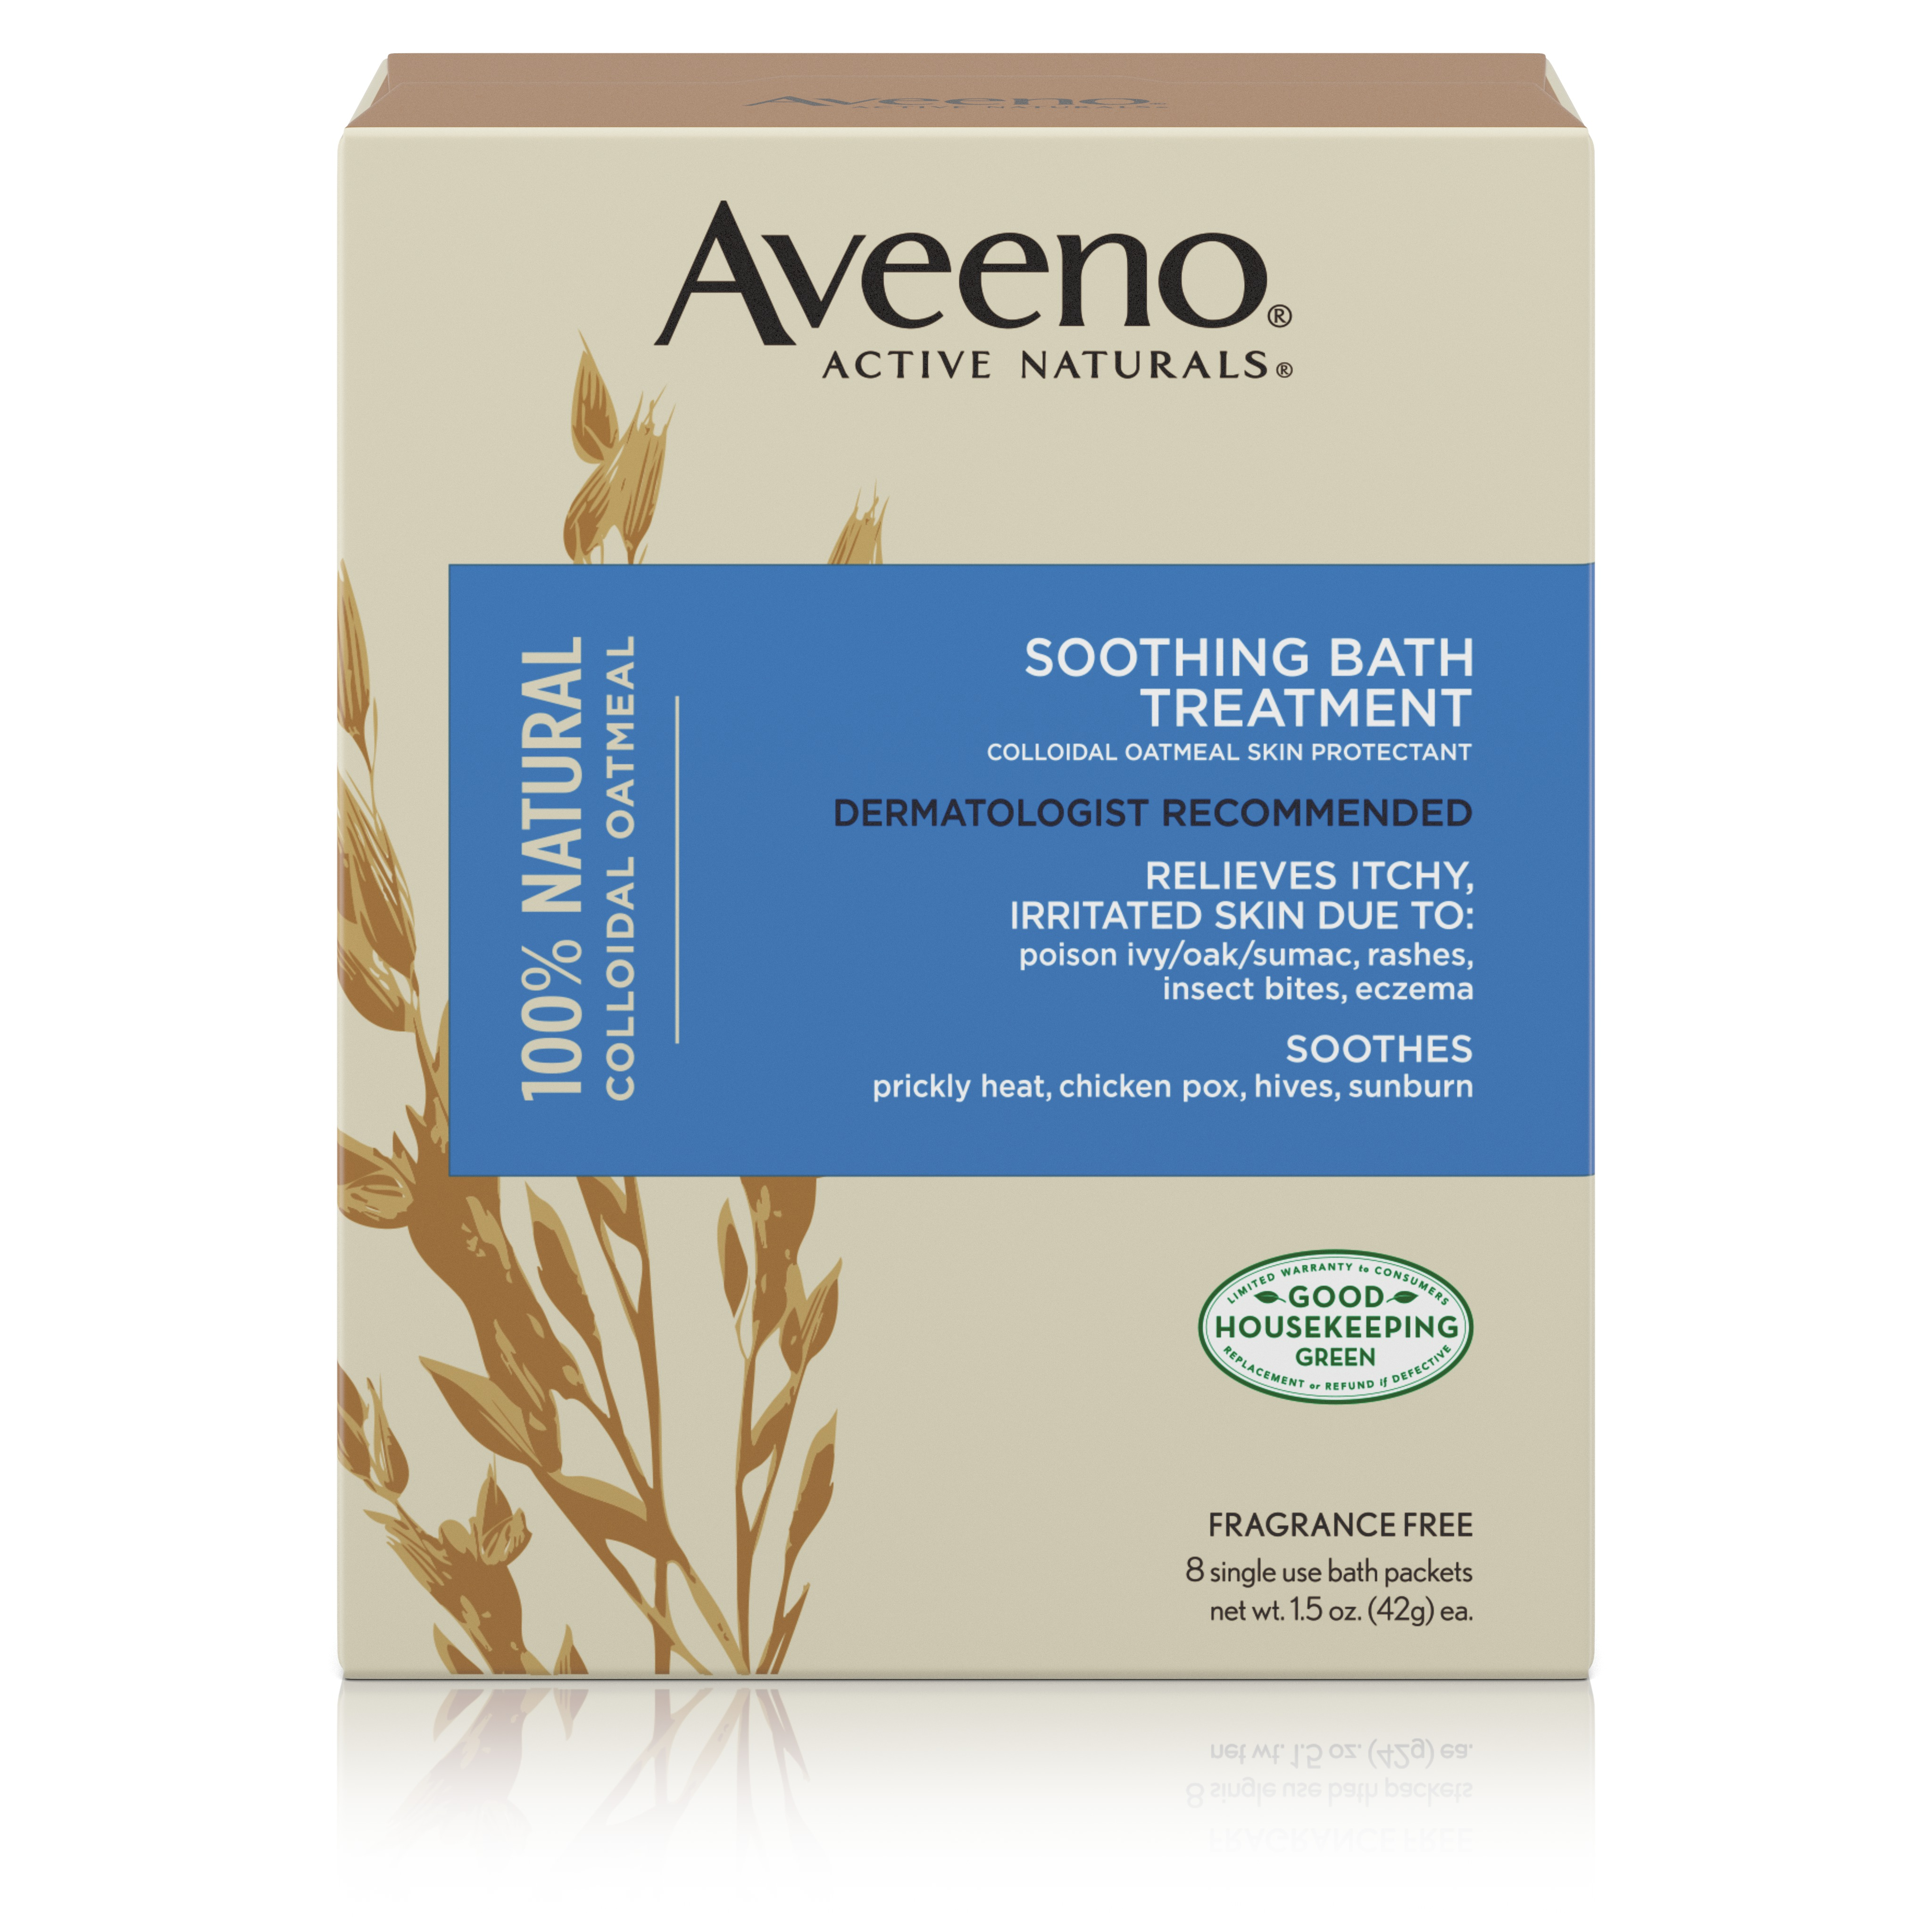 Aveeno Active Naturals Soothing Bath Treatment, 8 Single Use Packets - Walmart.com